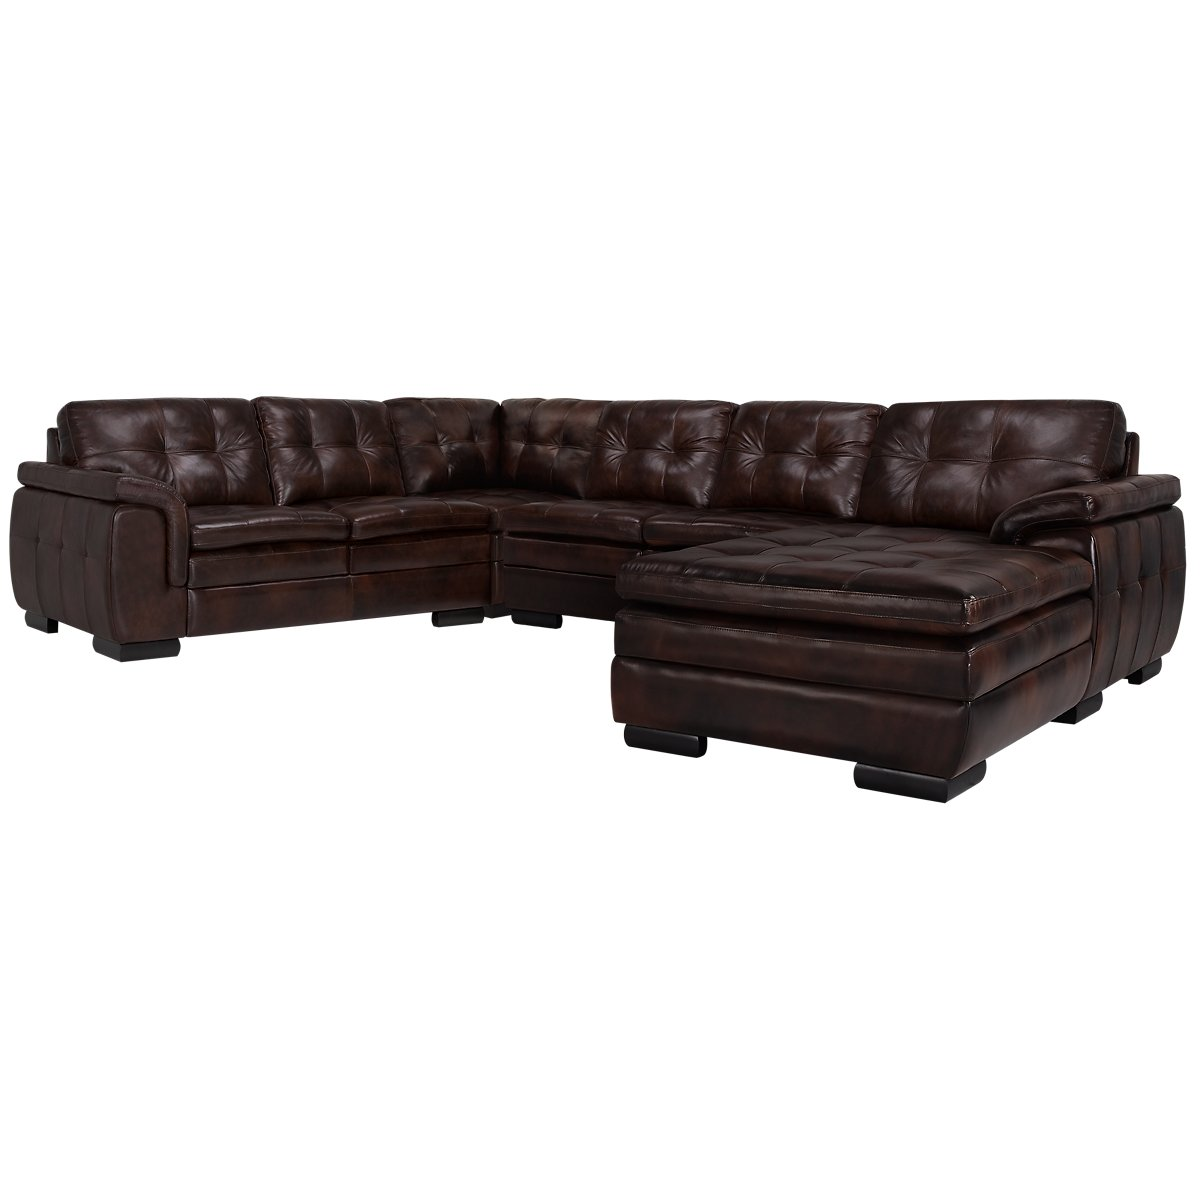 City furniture trevor dark brown leather small right for Brown leather chaise sofa